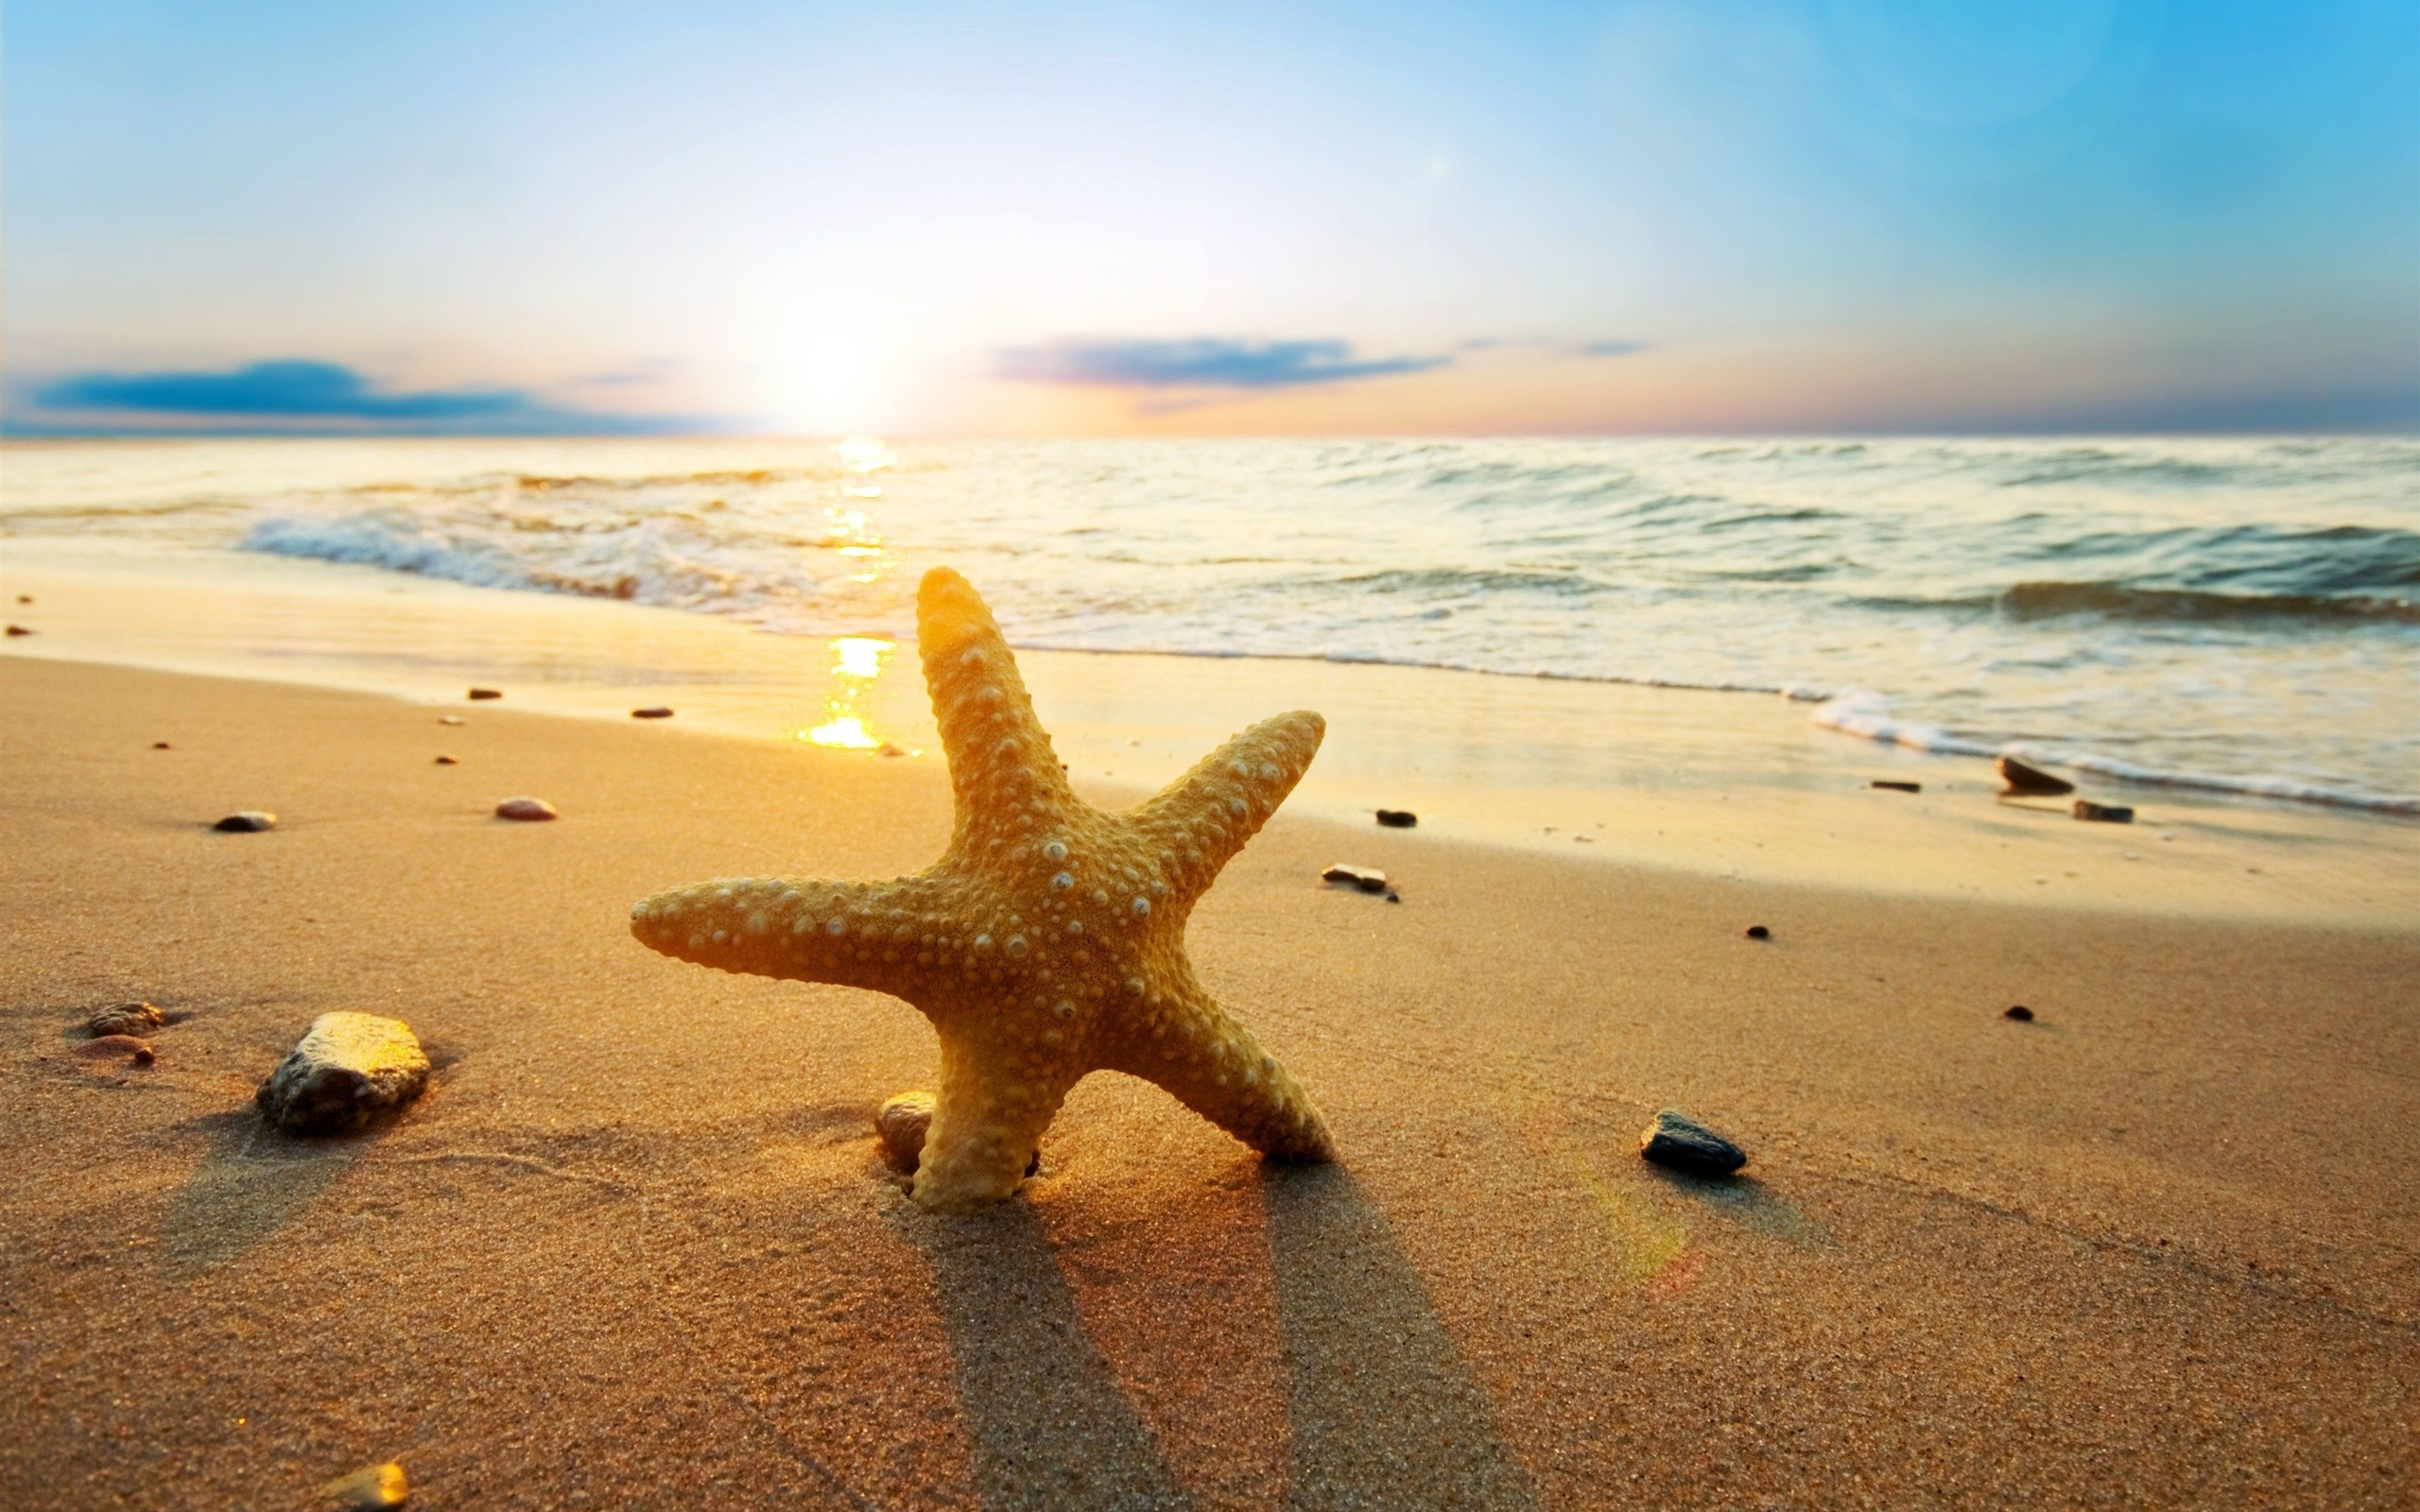 starfish-at-sunset-beach-sea-sun-2k-wallpaper